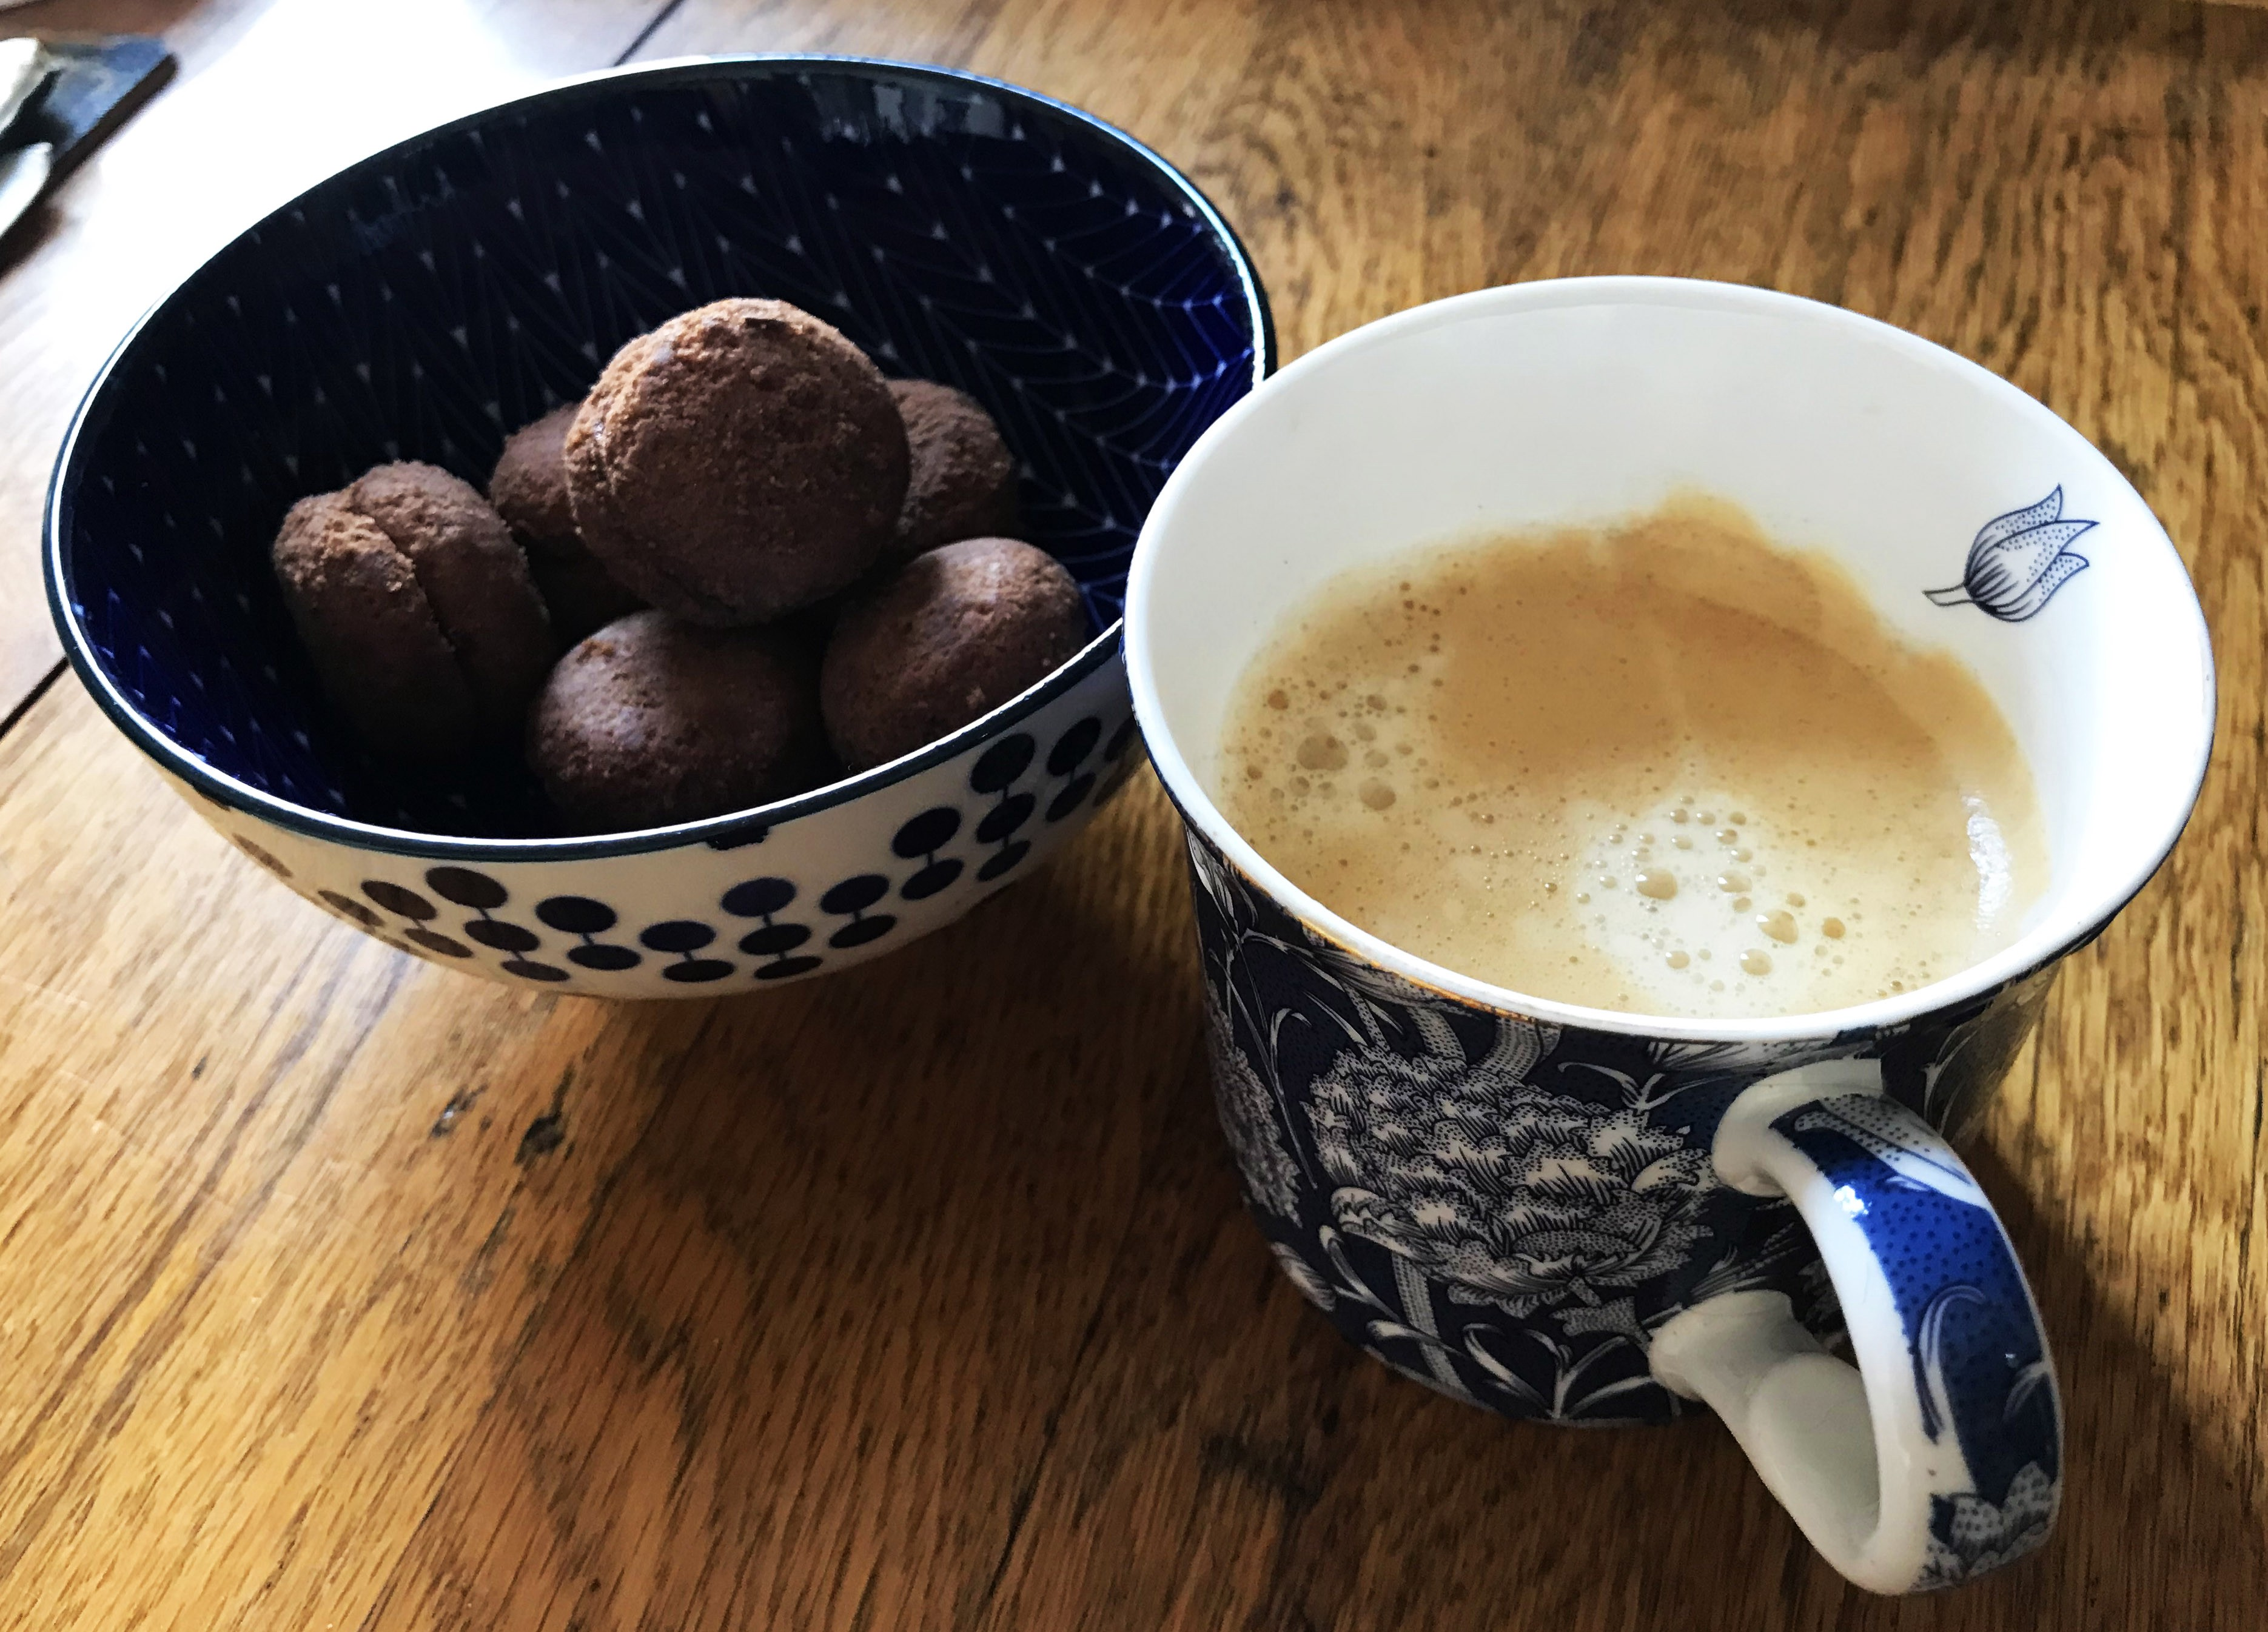 A cup of coffee and some Italian biscuits